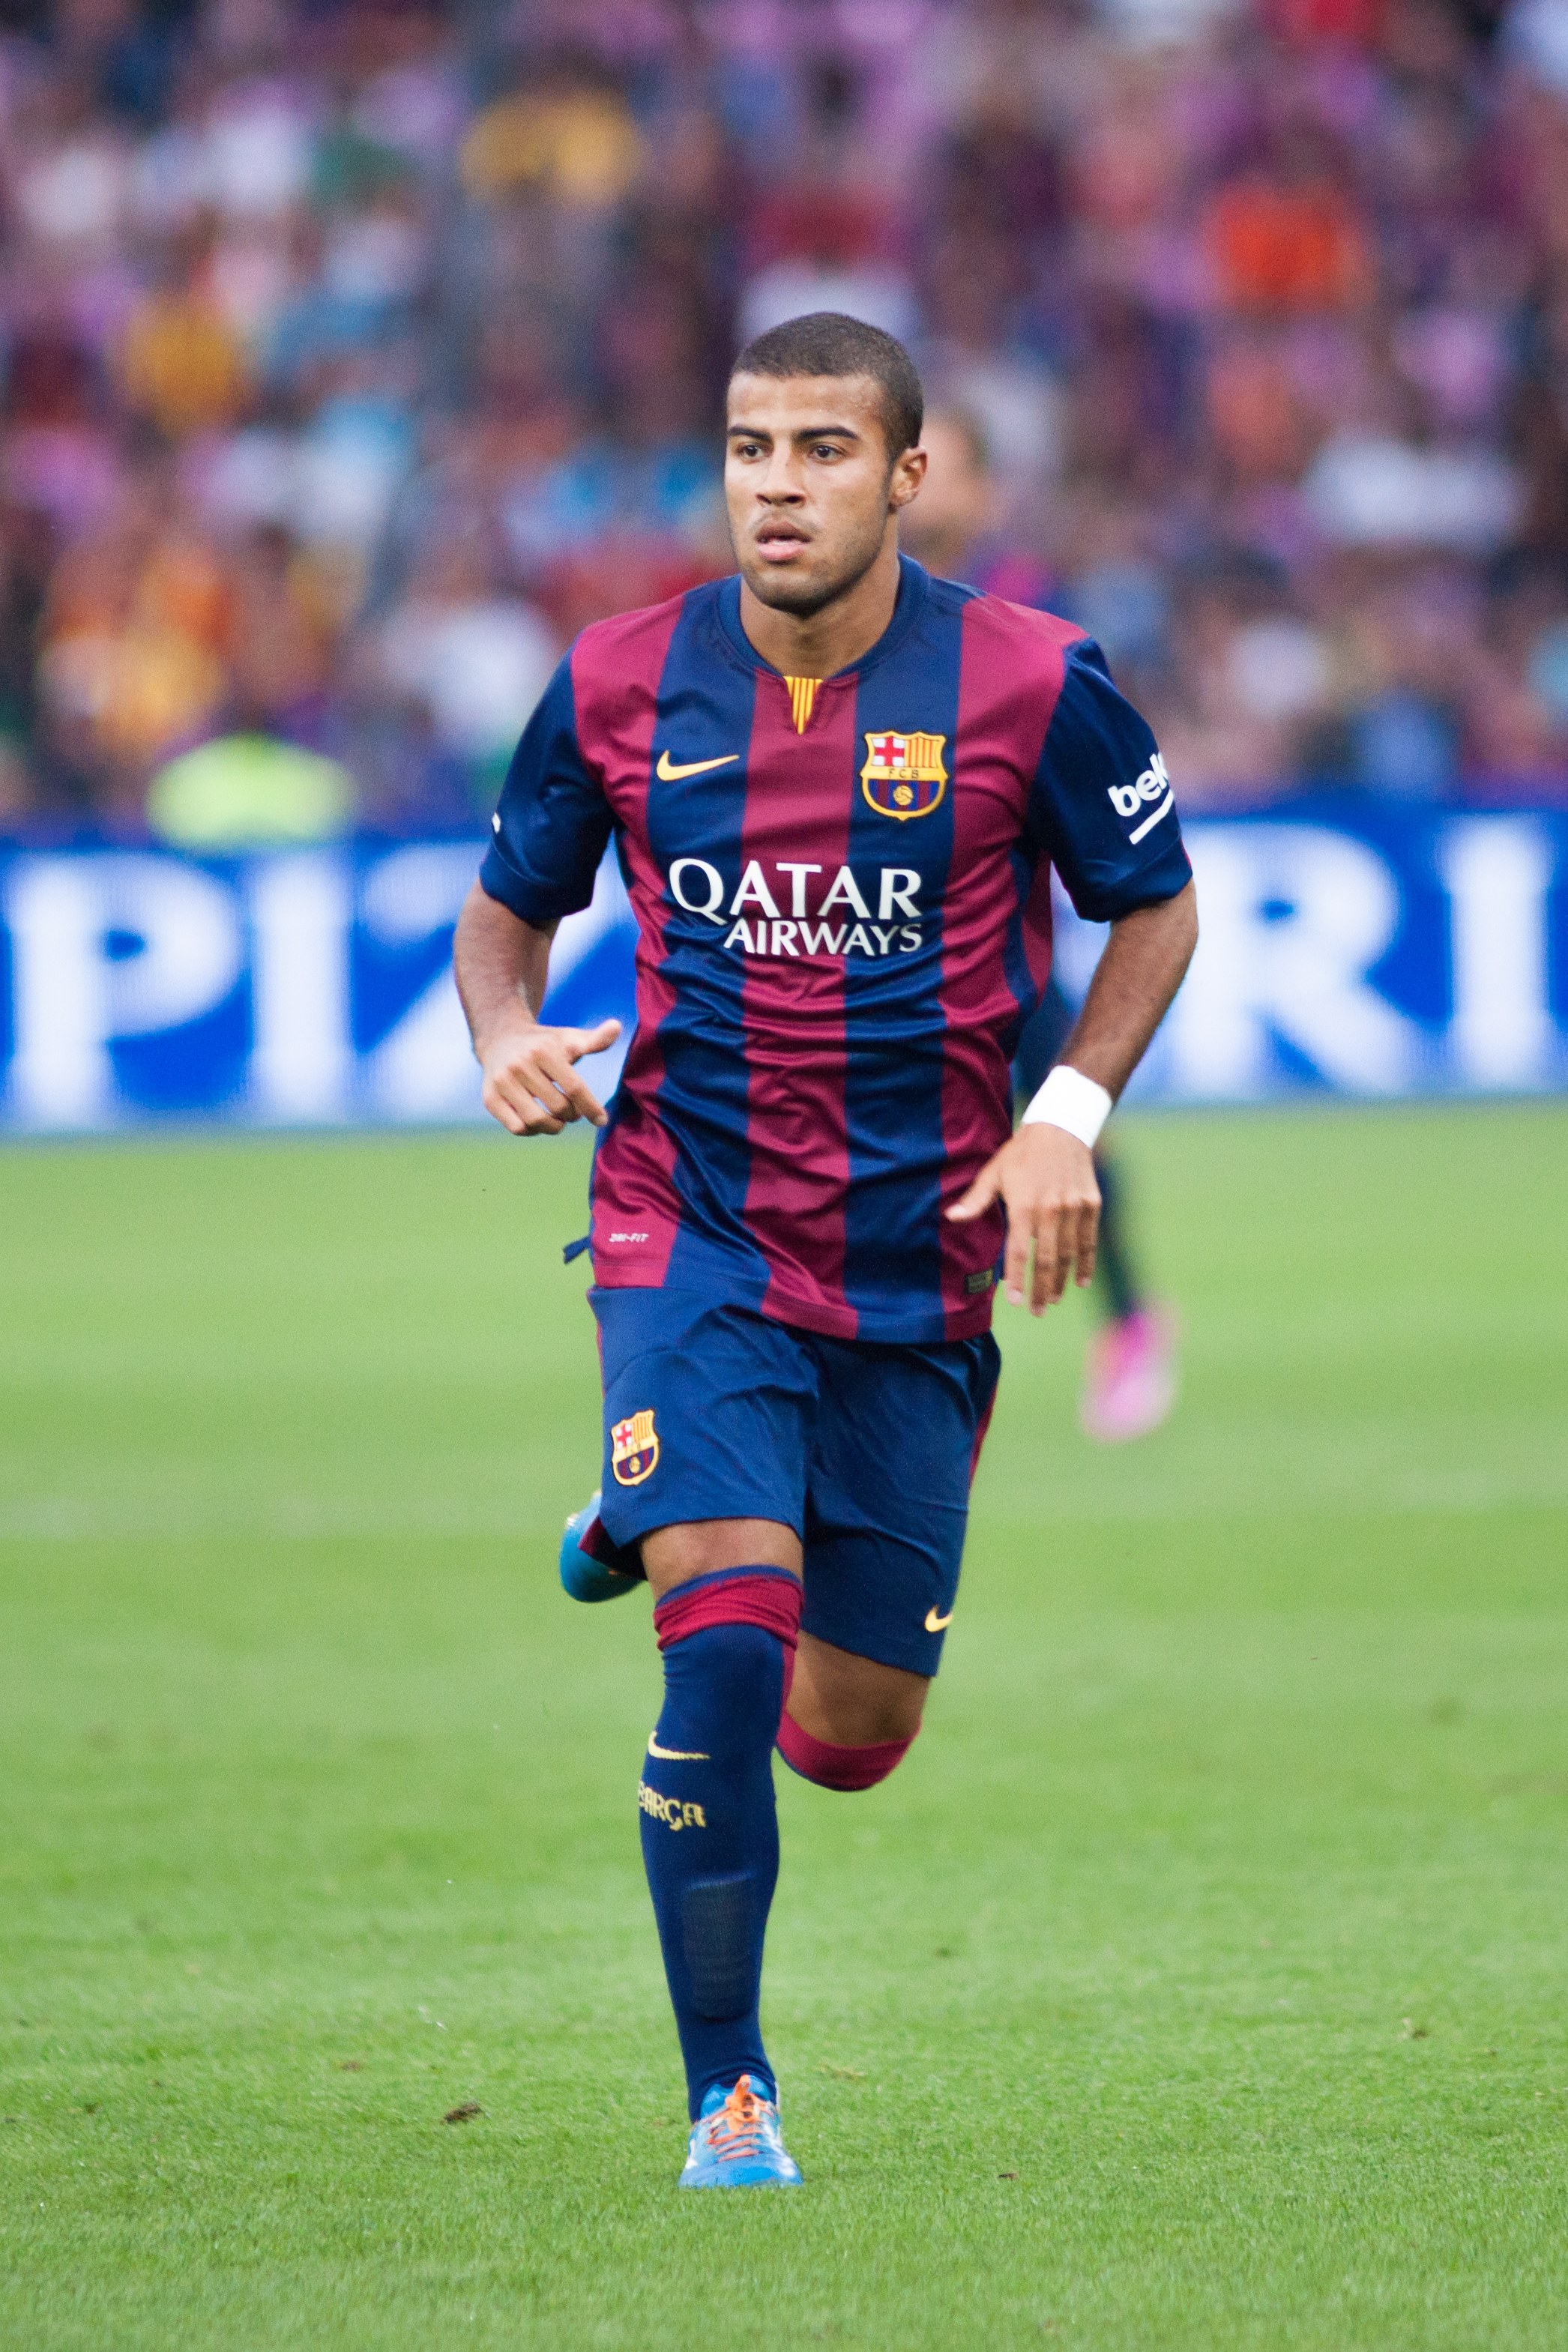 Rafinha earned a  million dollar salary - leaving the net worth at 20 million in 2018